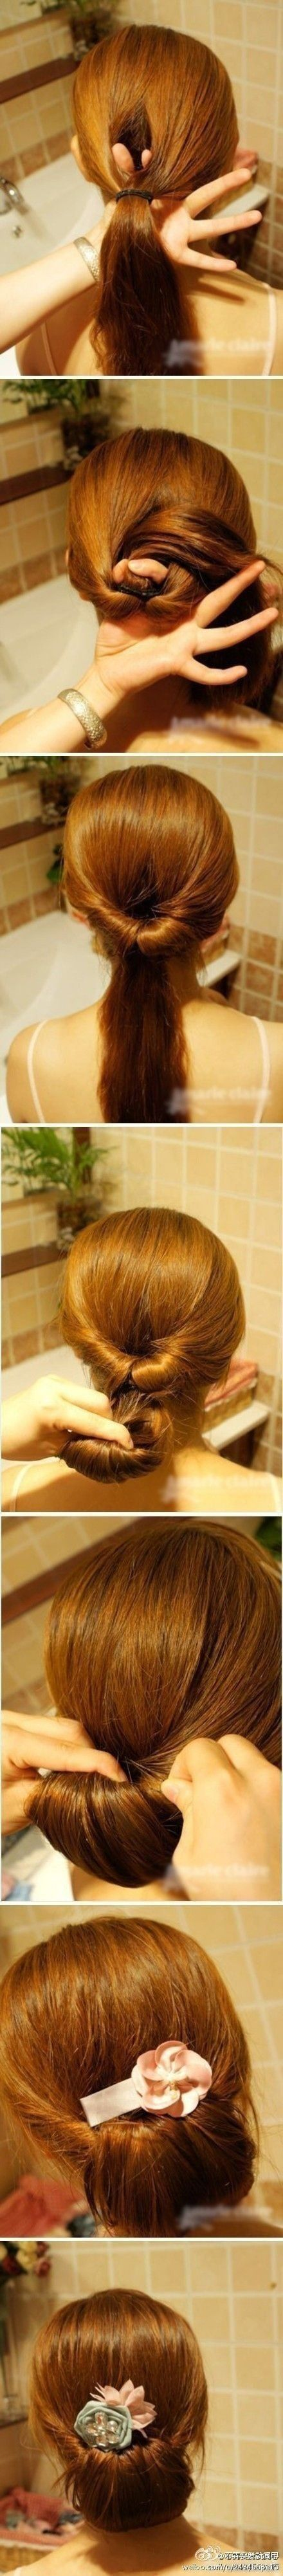 How to Guide Hairstyles (27 Photos) | CheezPops - Part 16